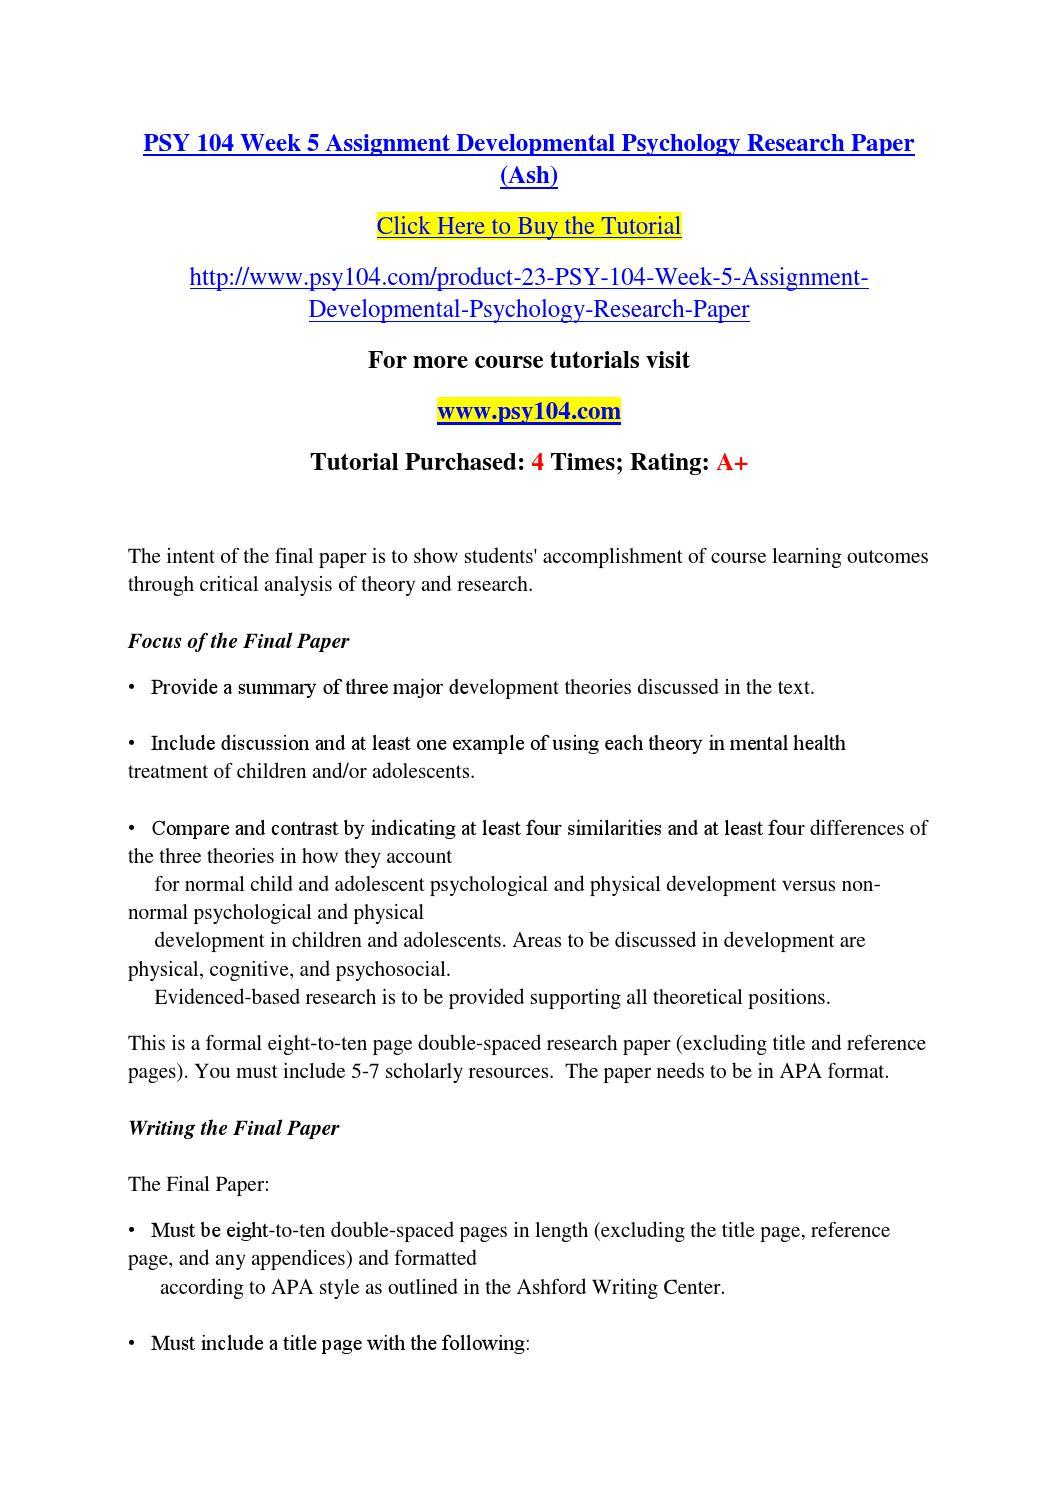 017 Developmental Psychology Essay Ideas Structure Psychological20ent Paper Topics Pdf20 Shocking Research Topic For College Students Computer Science Nursing Full